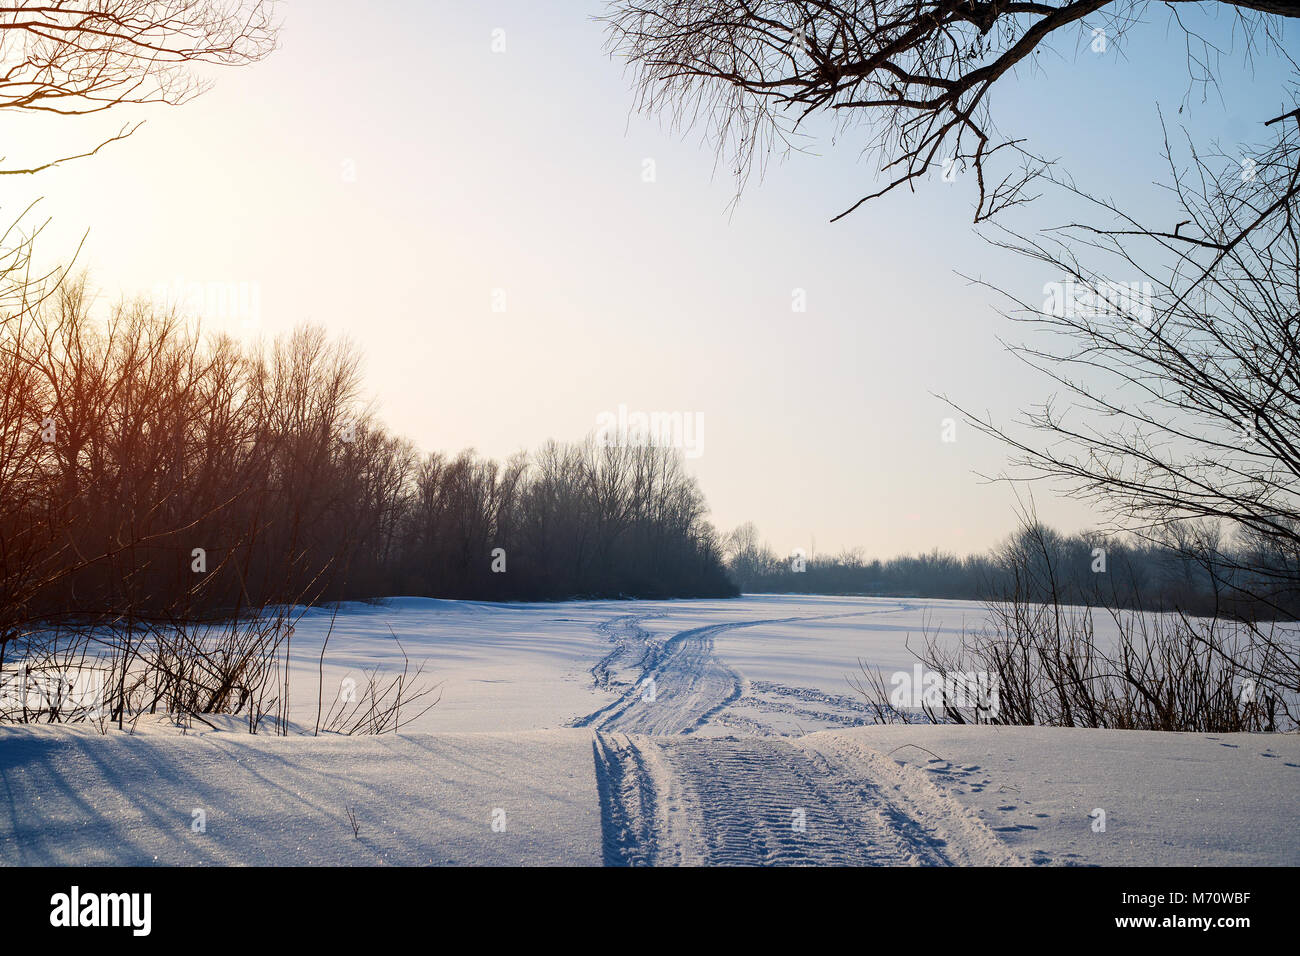 Snowmobile trail in the snow - Stock Image